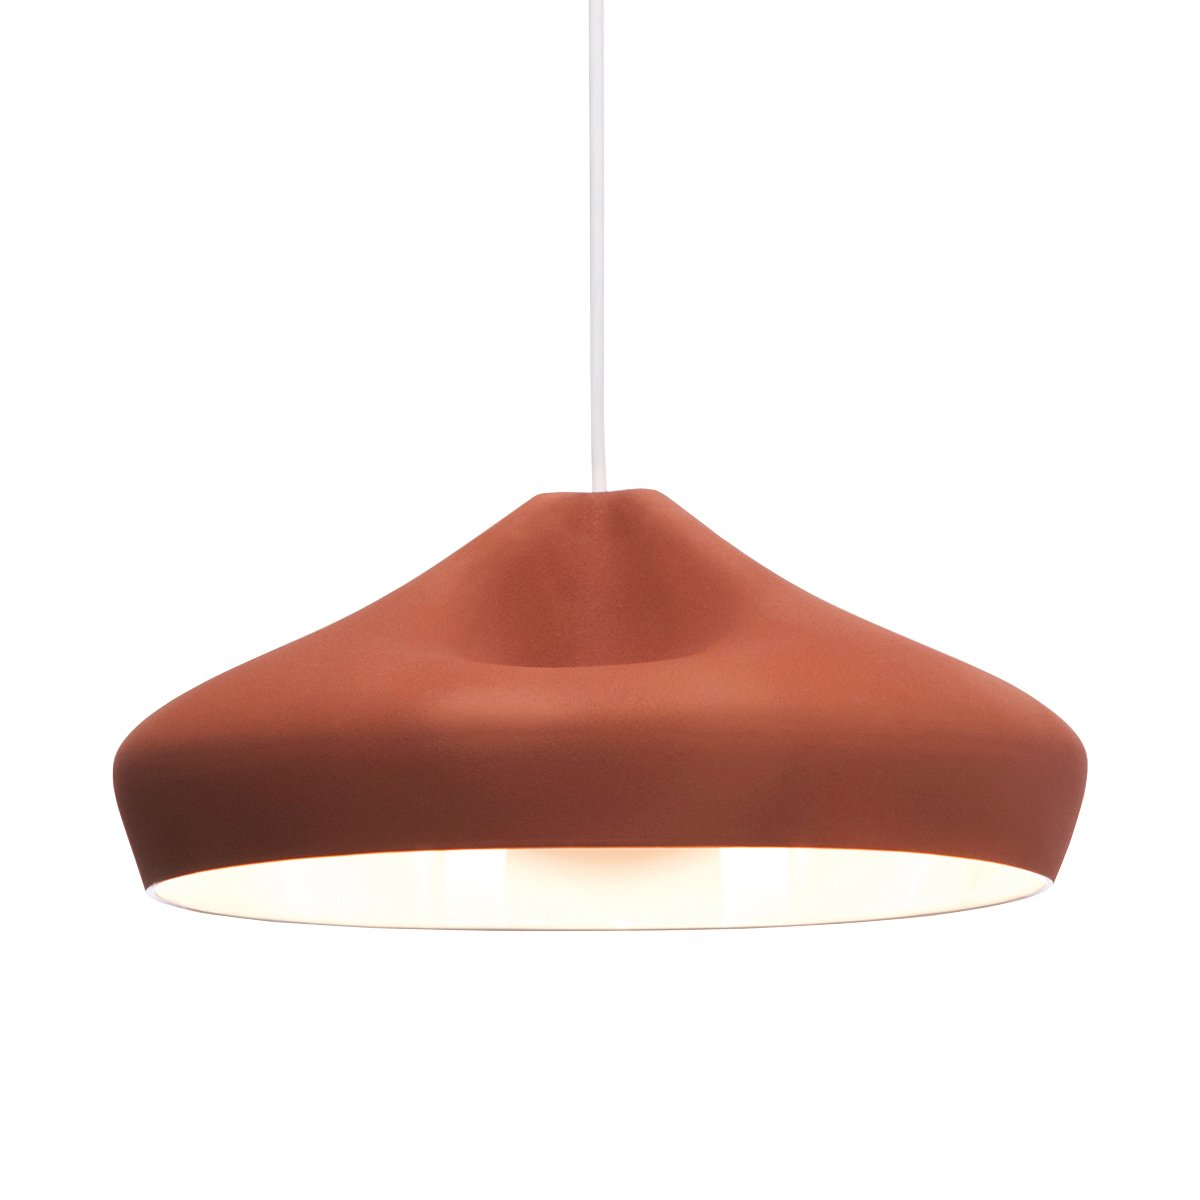 Pleat Box 36 Hanglamp - Marset